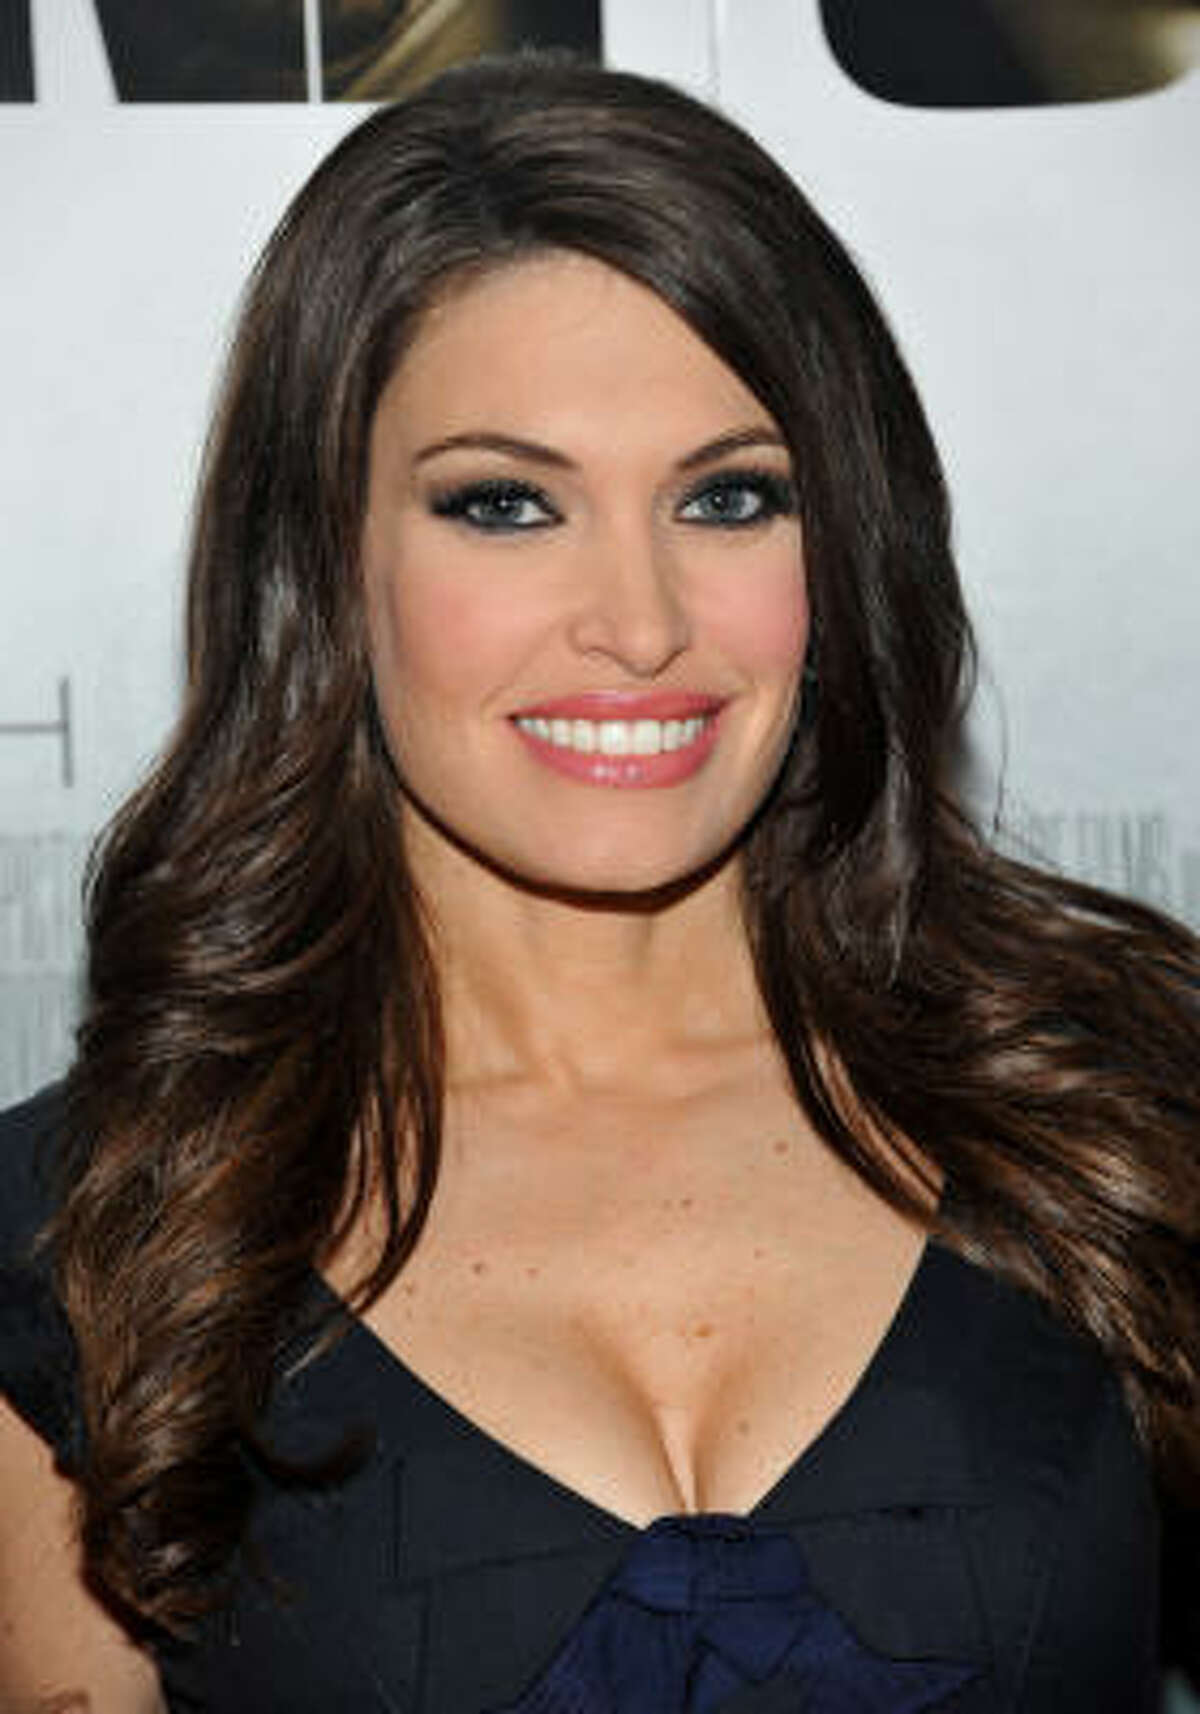 Kimberly Guilfoyle gave birth to a son named Ronan in 2006.